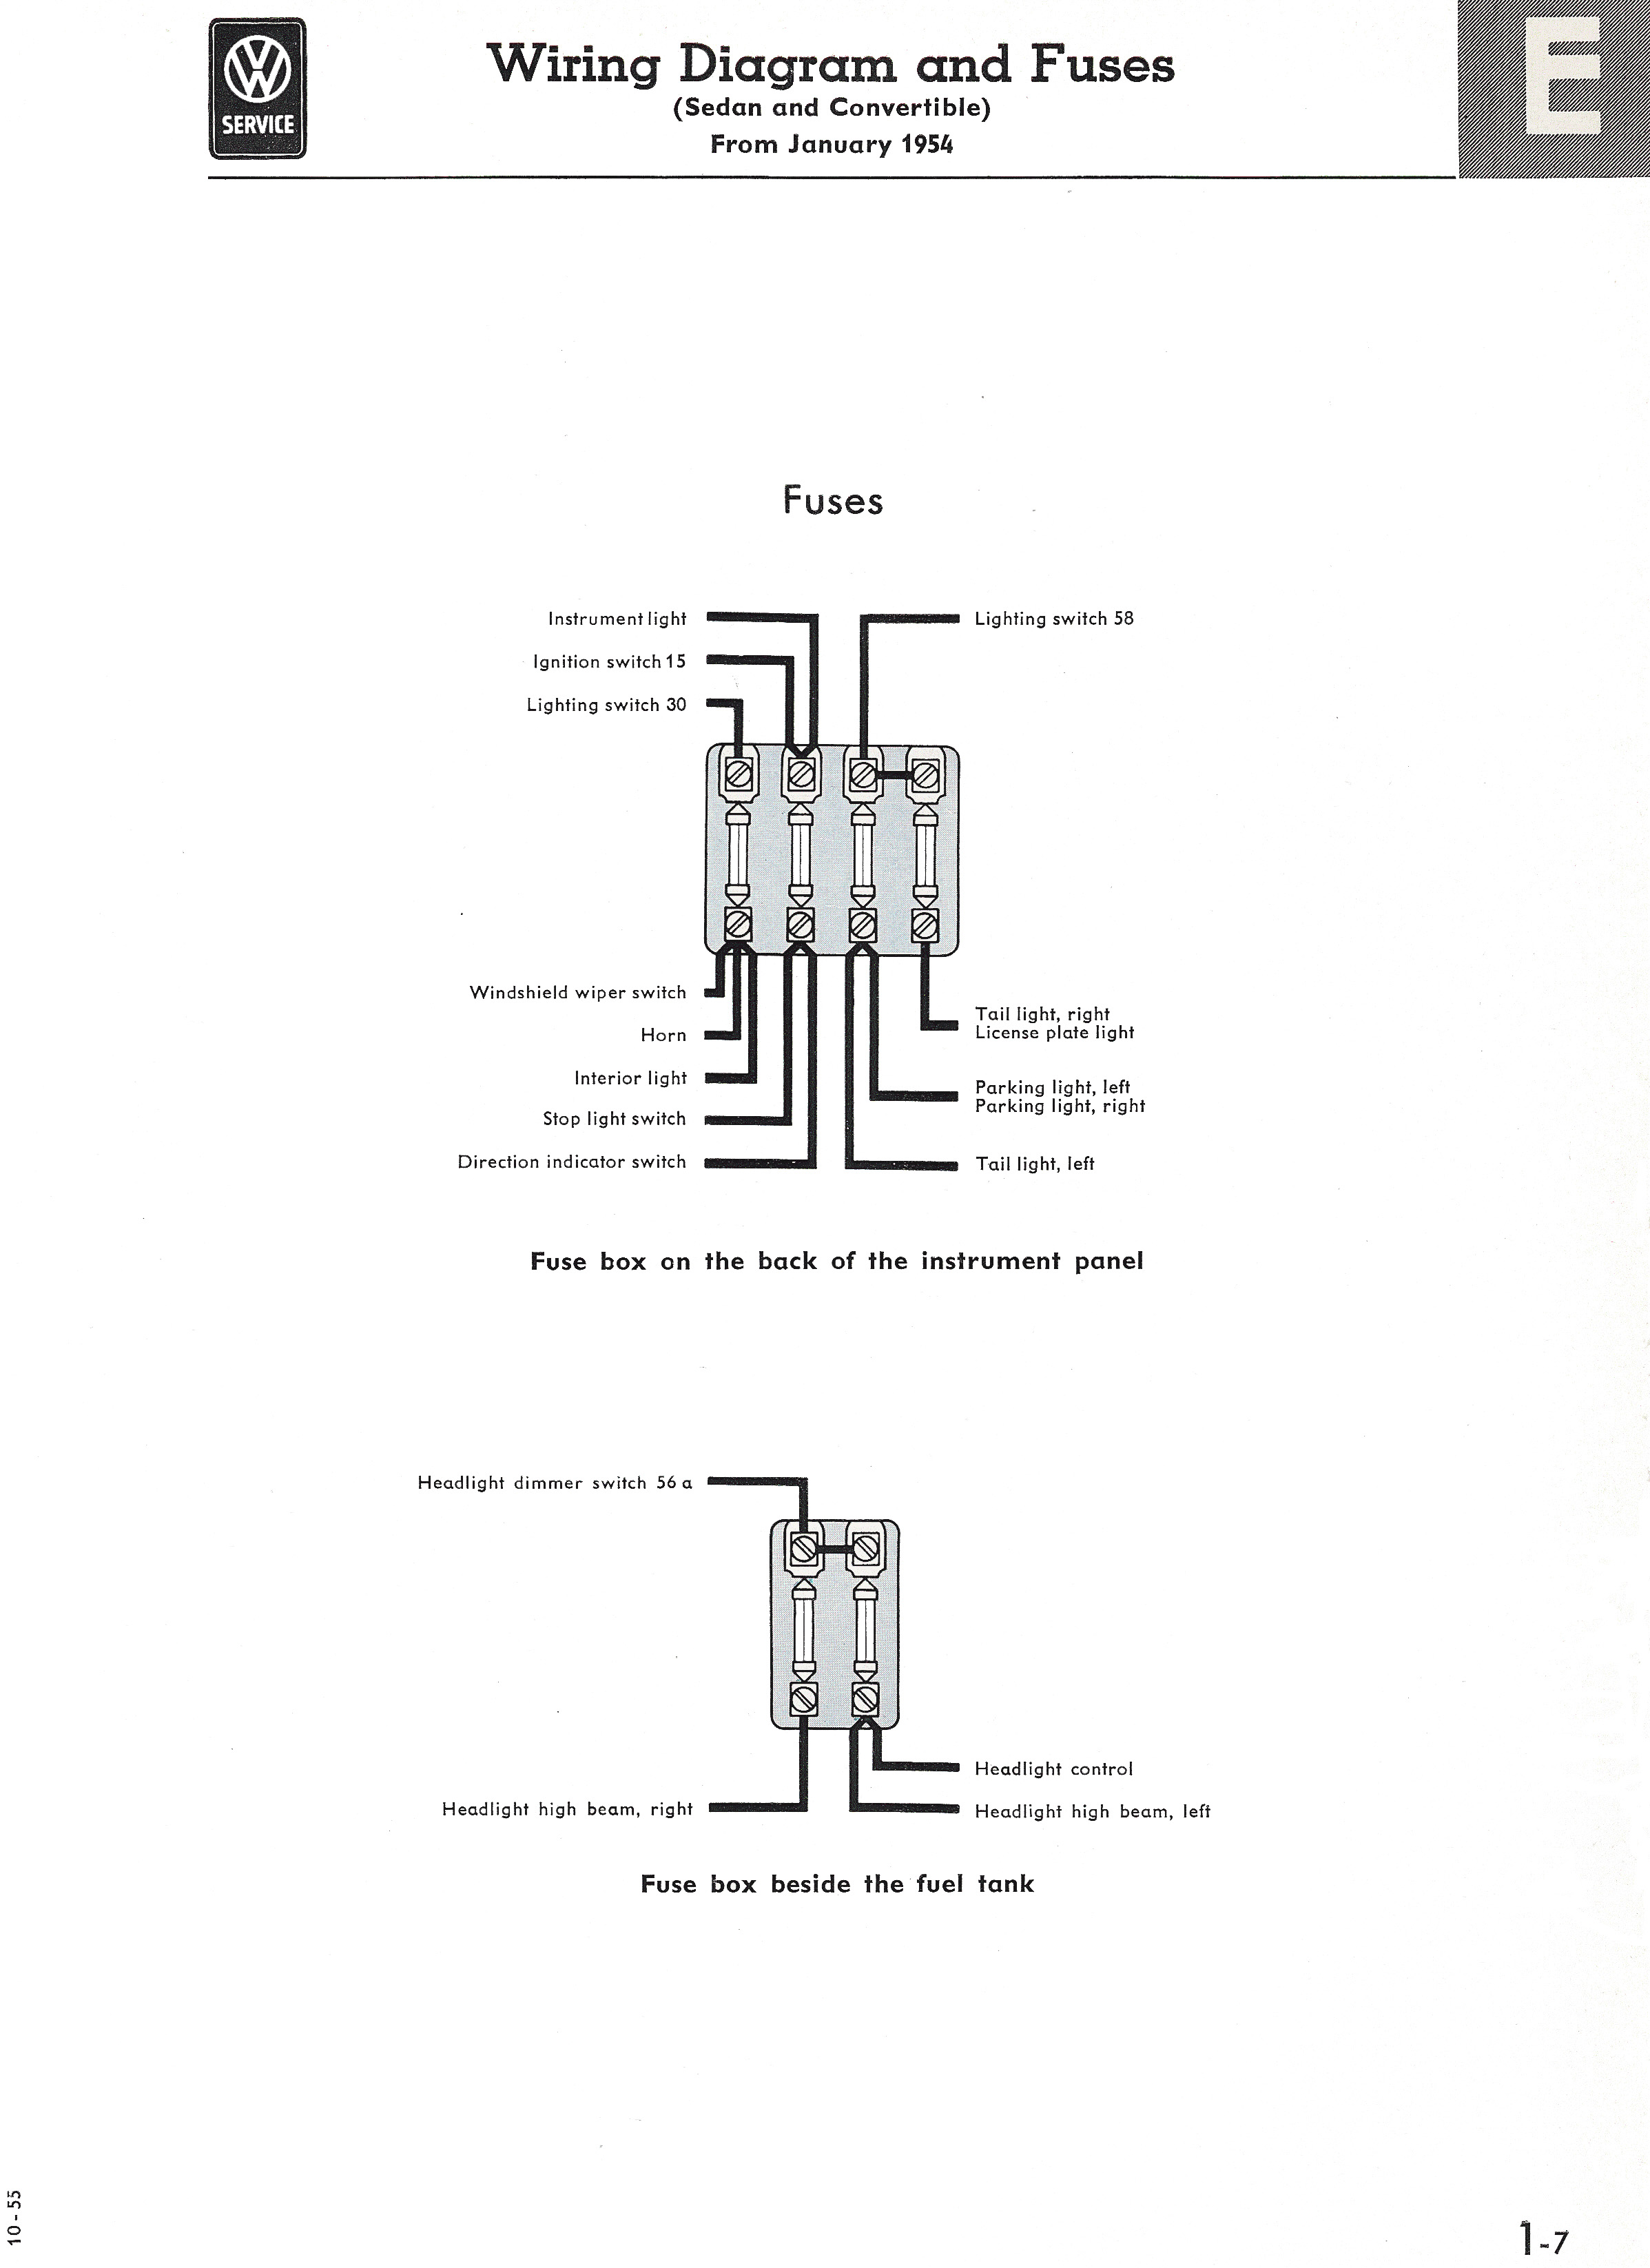 Type 1 Wiring Diagrams Chevy 350 Spark Plug Diagram Free Picture